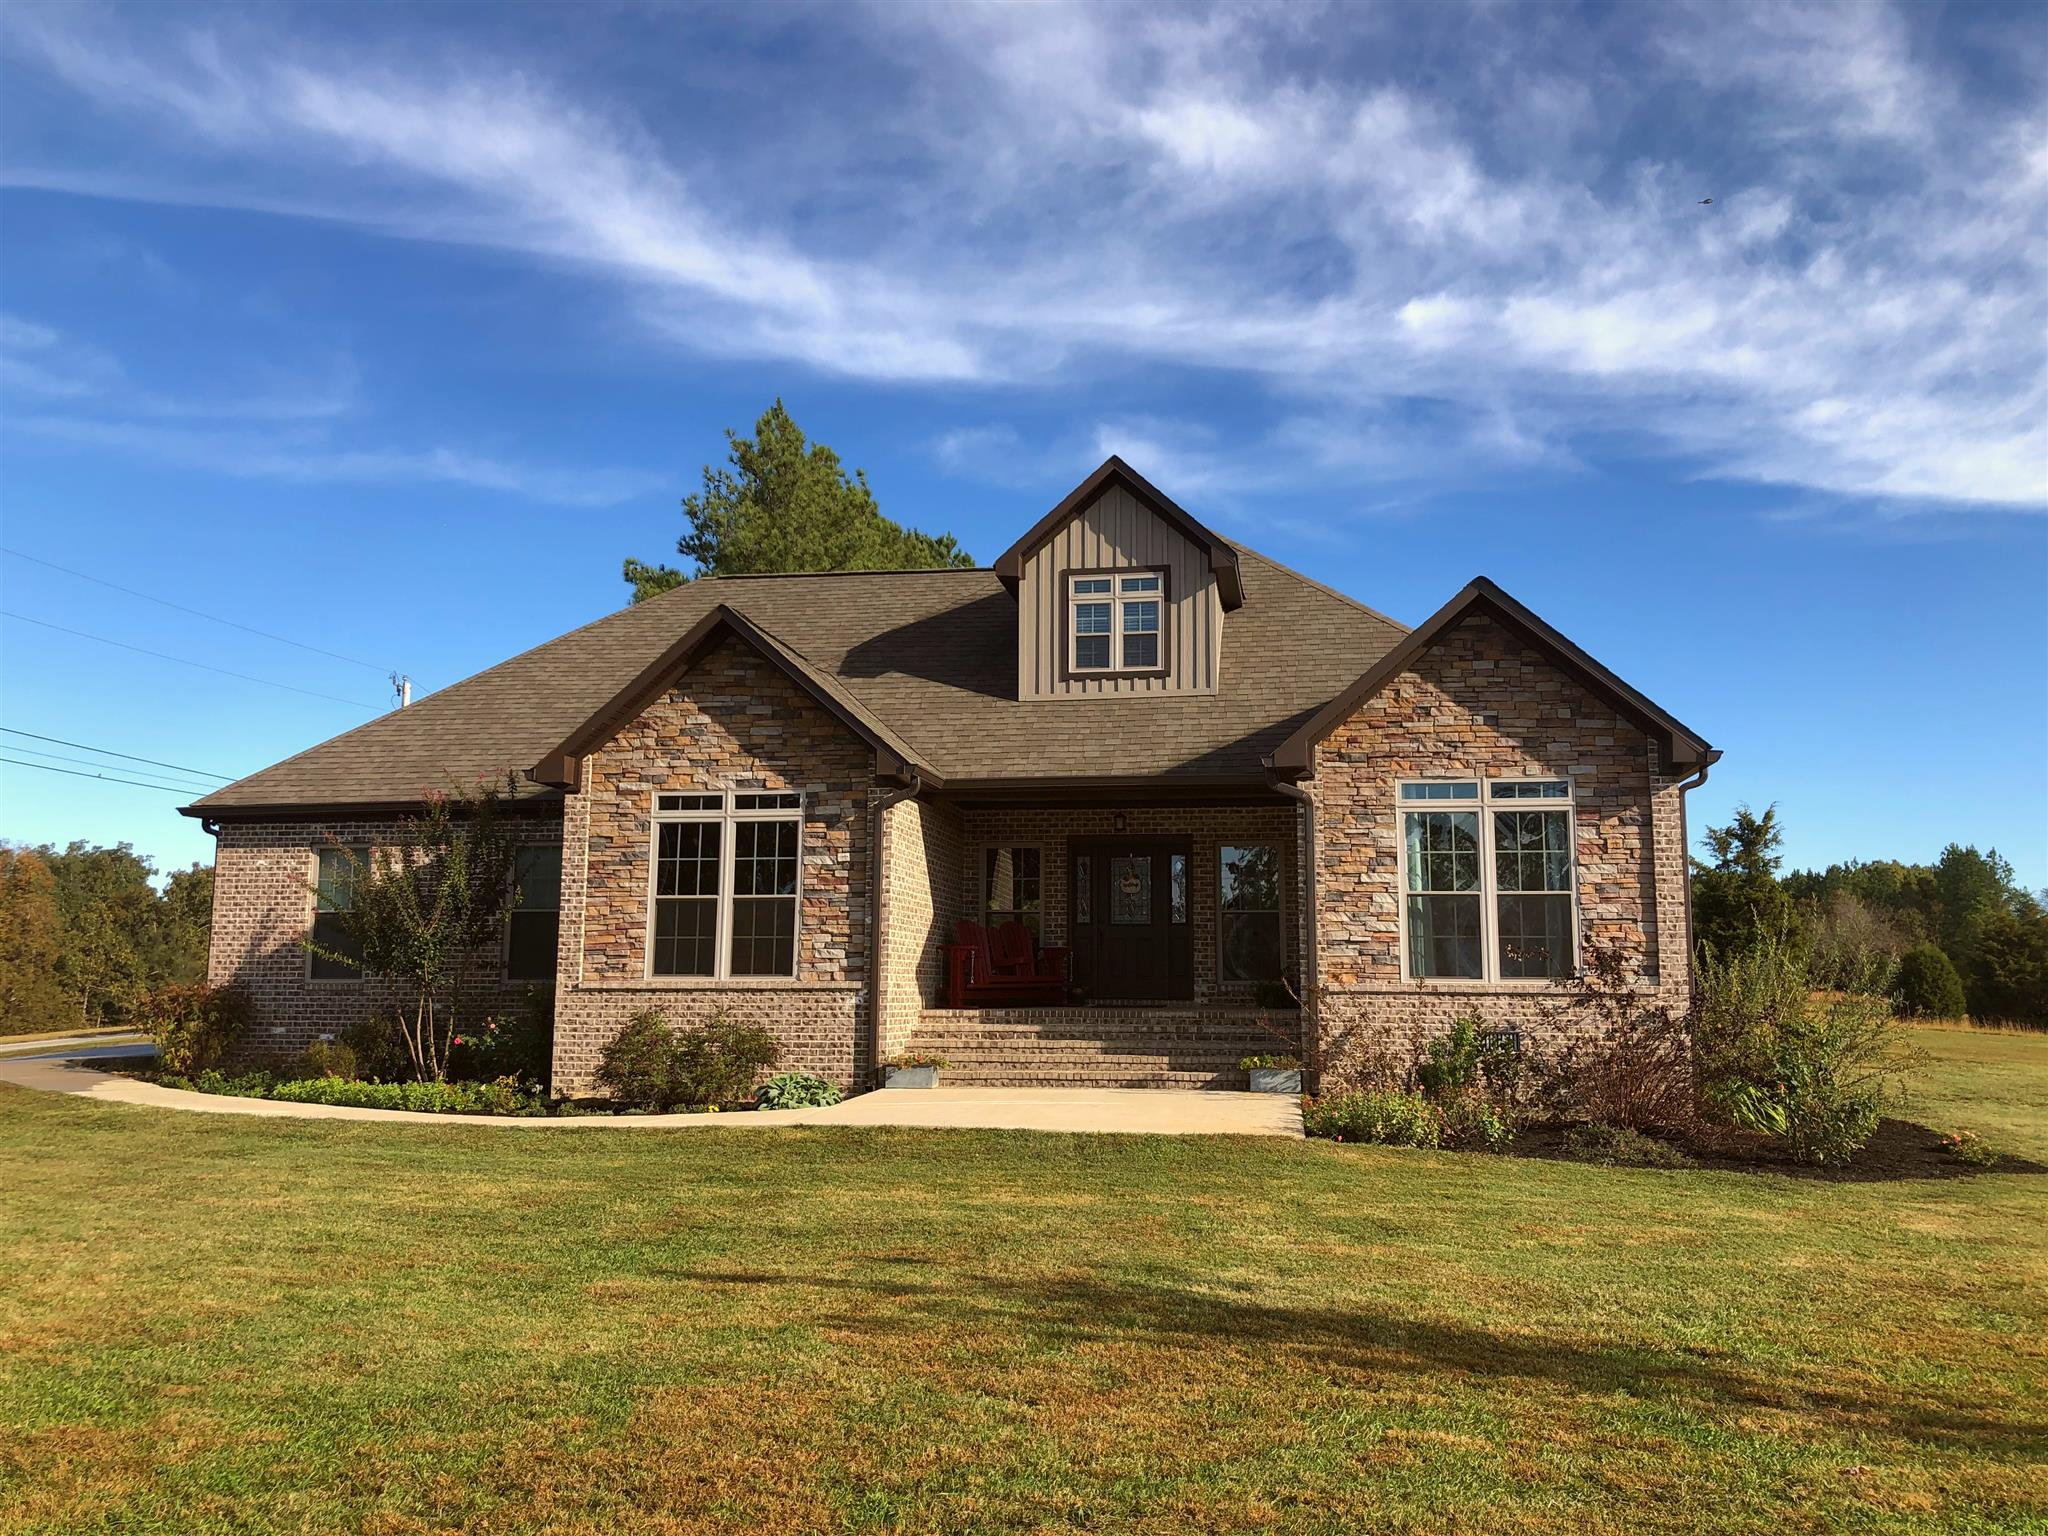 562 Double Eagle Dr, Summertown, TN 38483 - Summertown, TN real estate listing